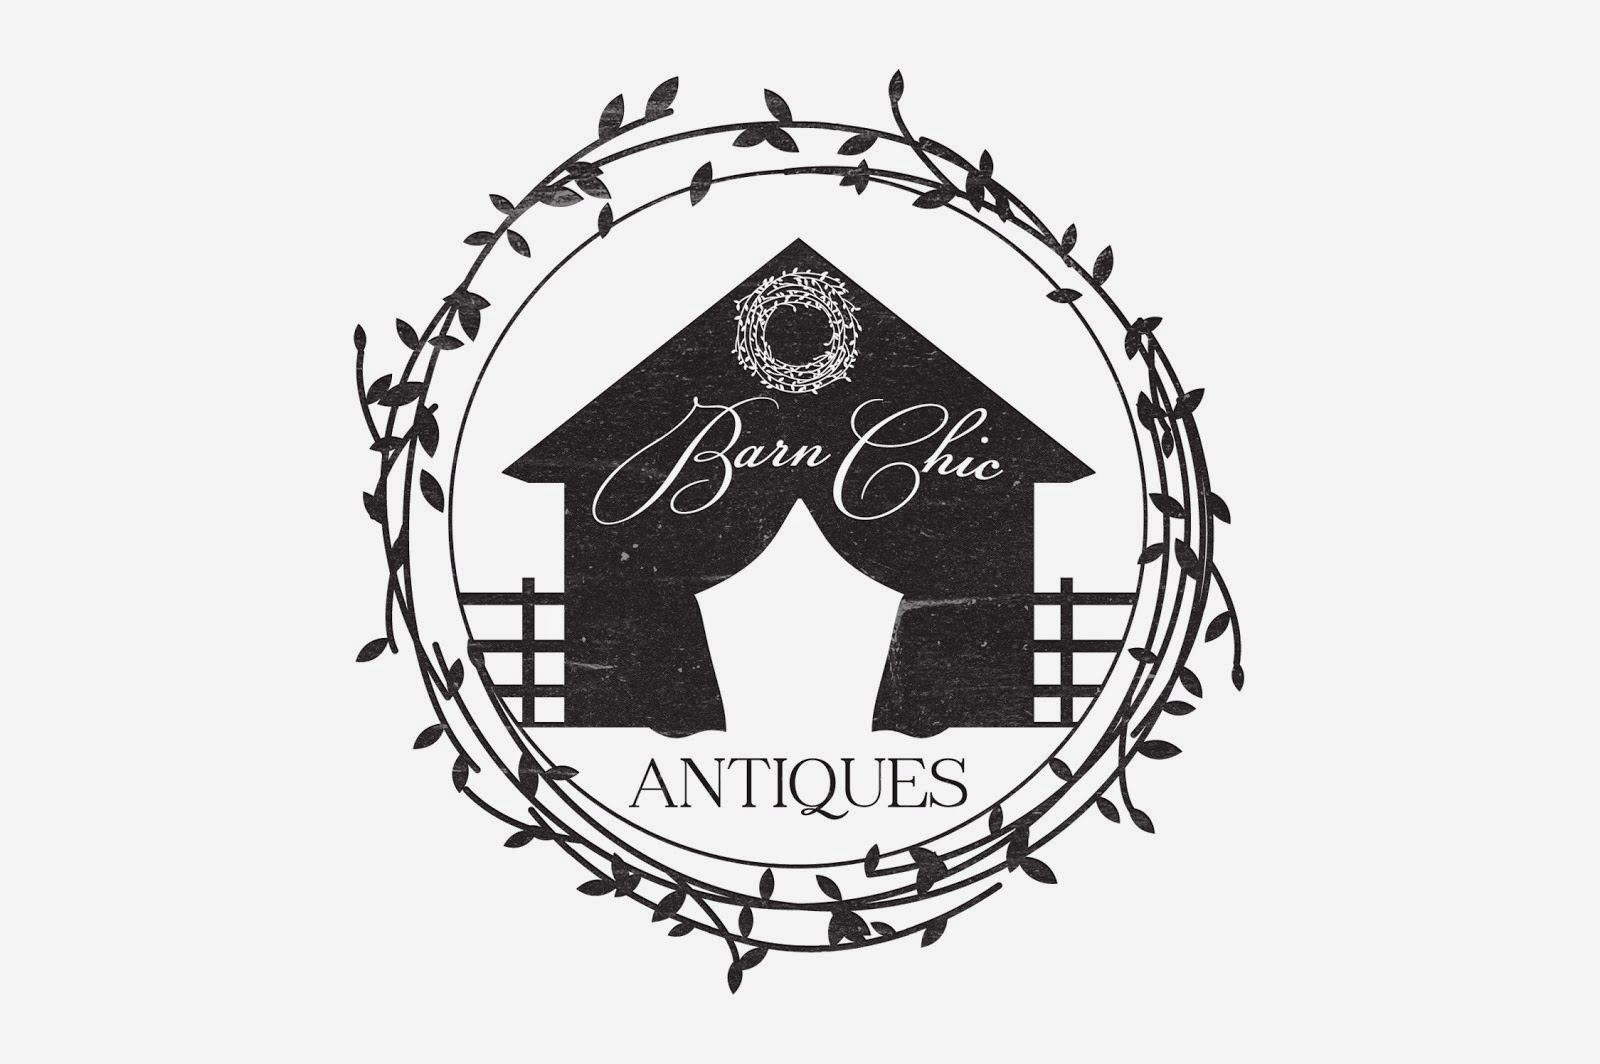 Barn Chic Antiques